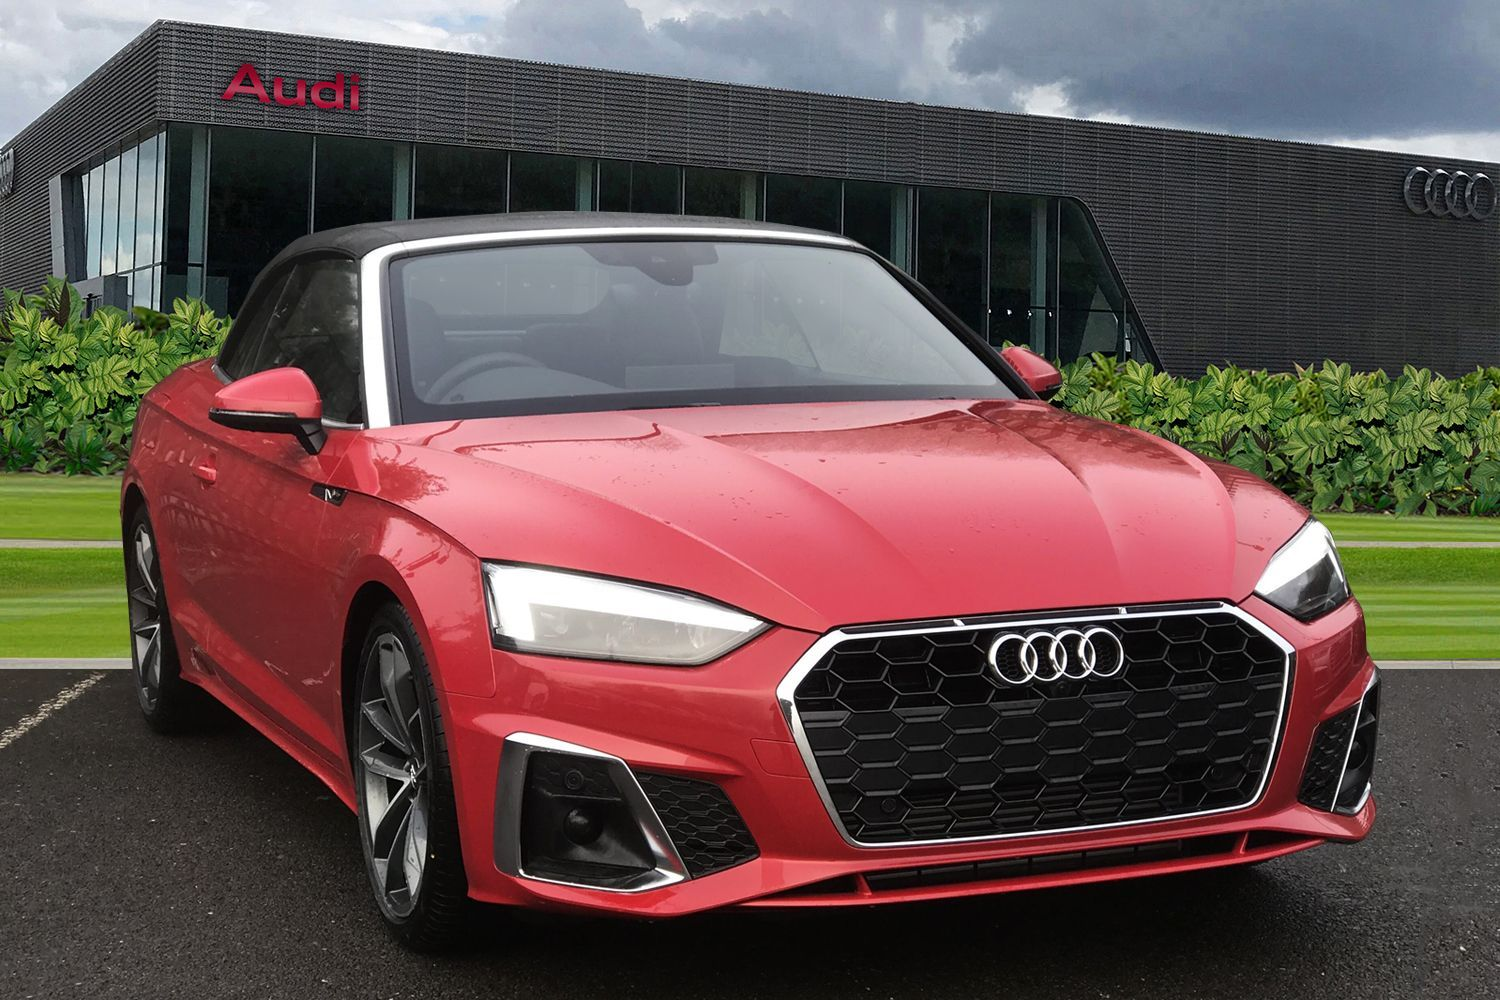 Red Petrol Audi A5 Cabriolet Convertible Used Cars For Sale Autotrader Uk